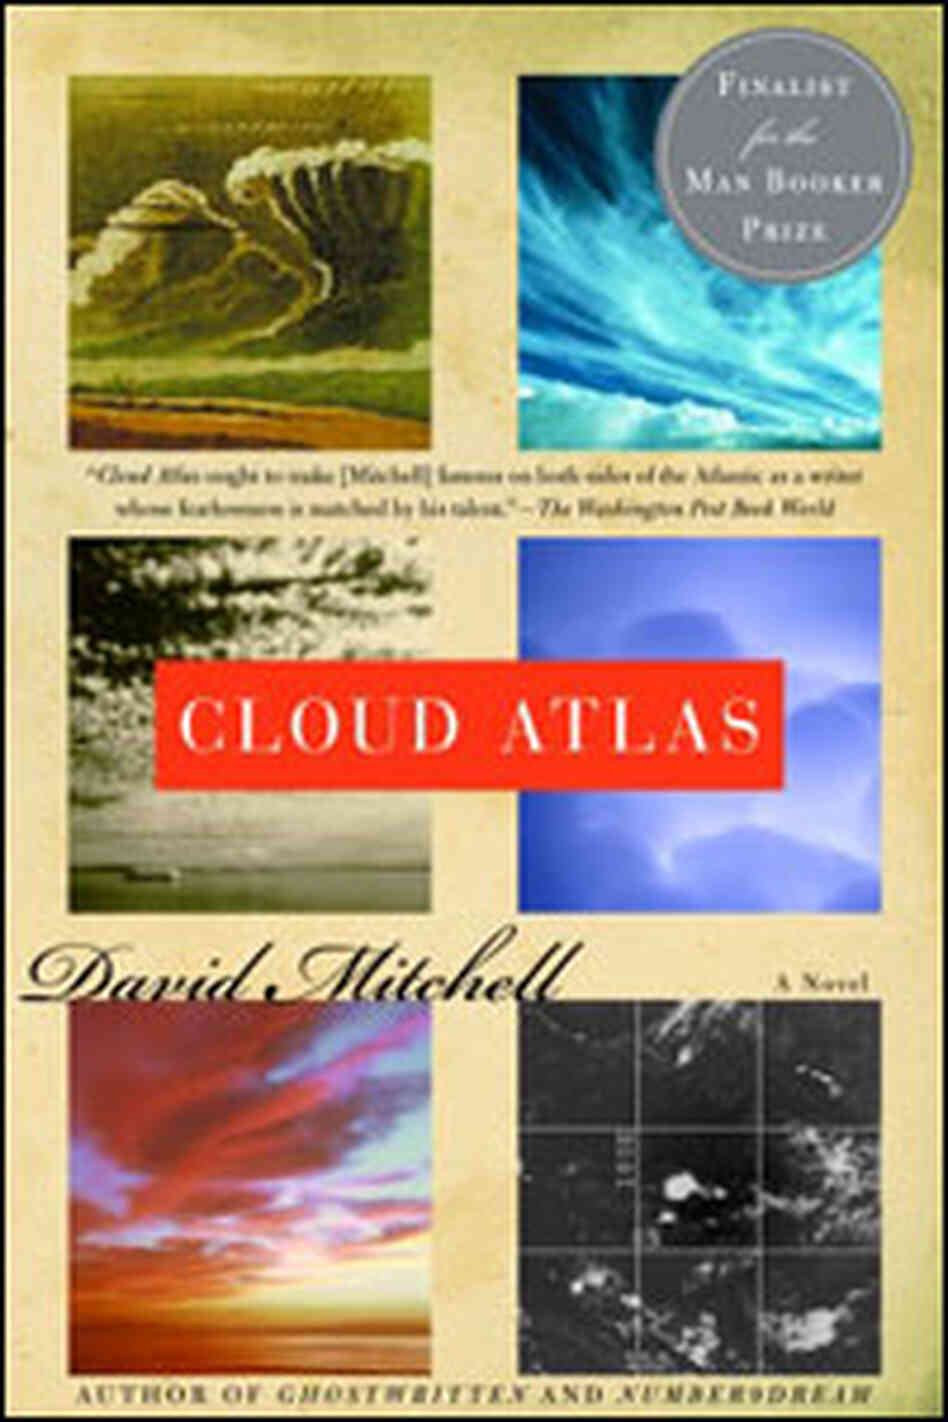 http://media.npr.org/programs/totn/features/2005/summerbooks/cloud_200x300-301cd8c005594716ef4a7196ada6890867f72474-s6-c30.jpg